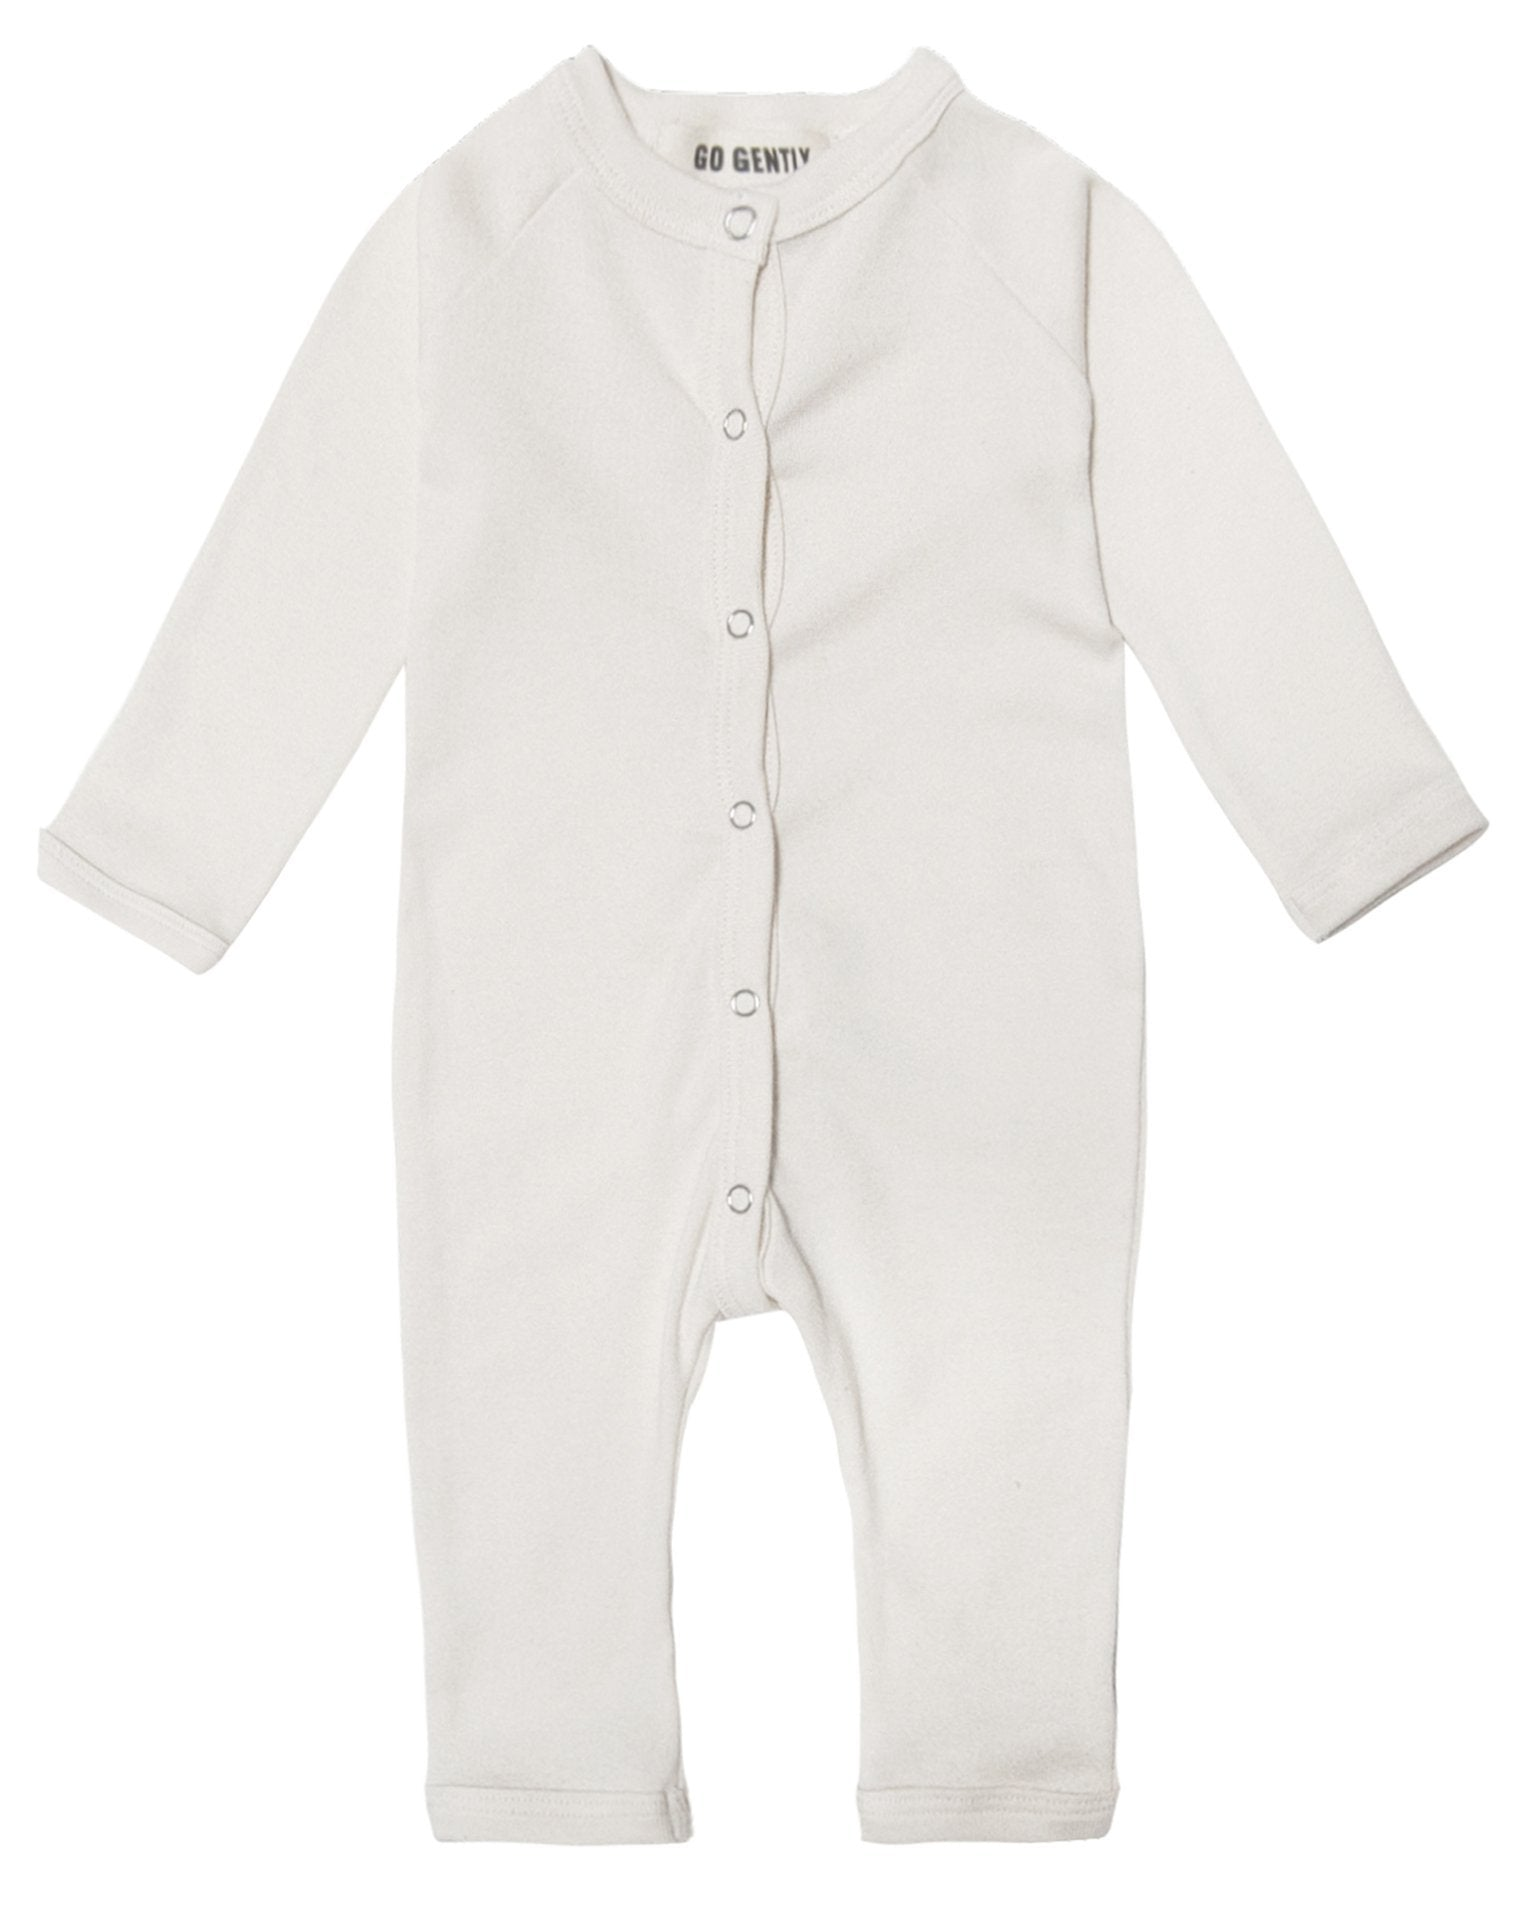 Little go gently nation baby boy solid romper in natural